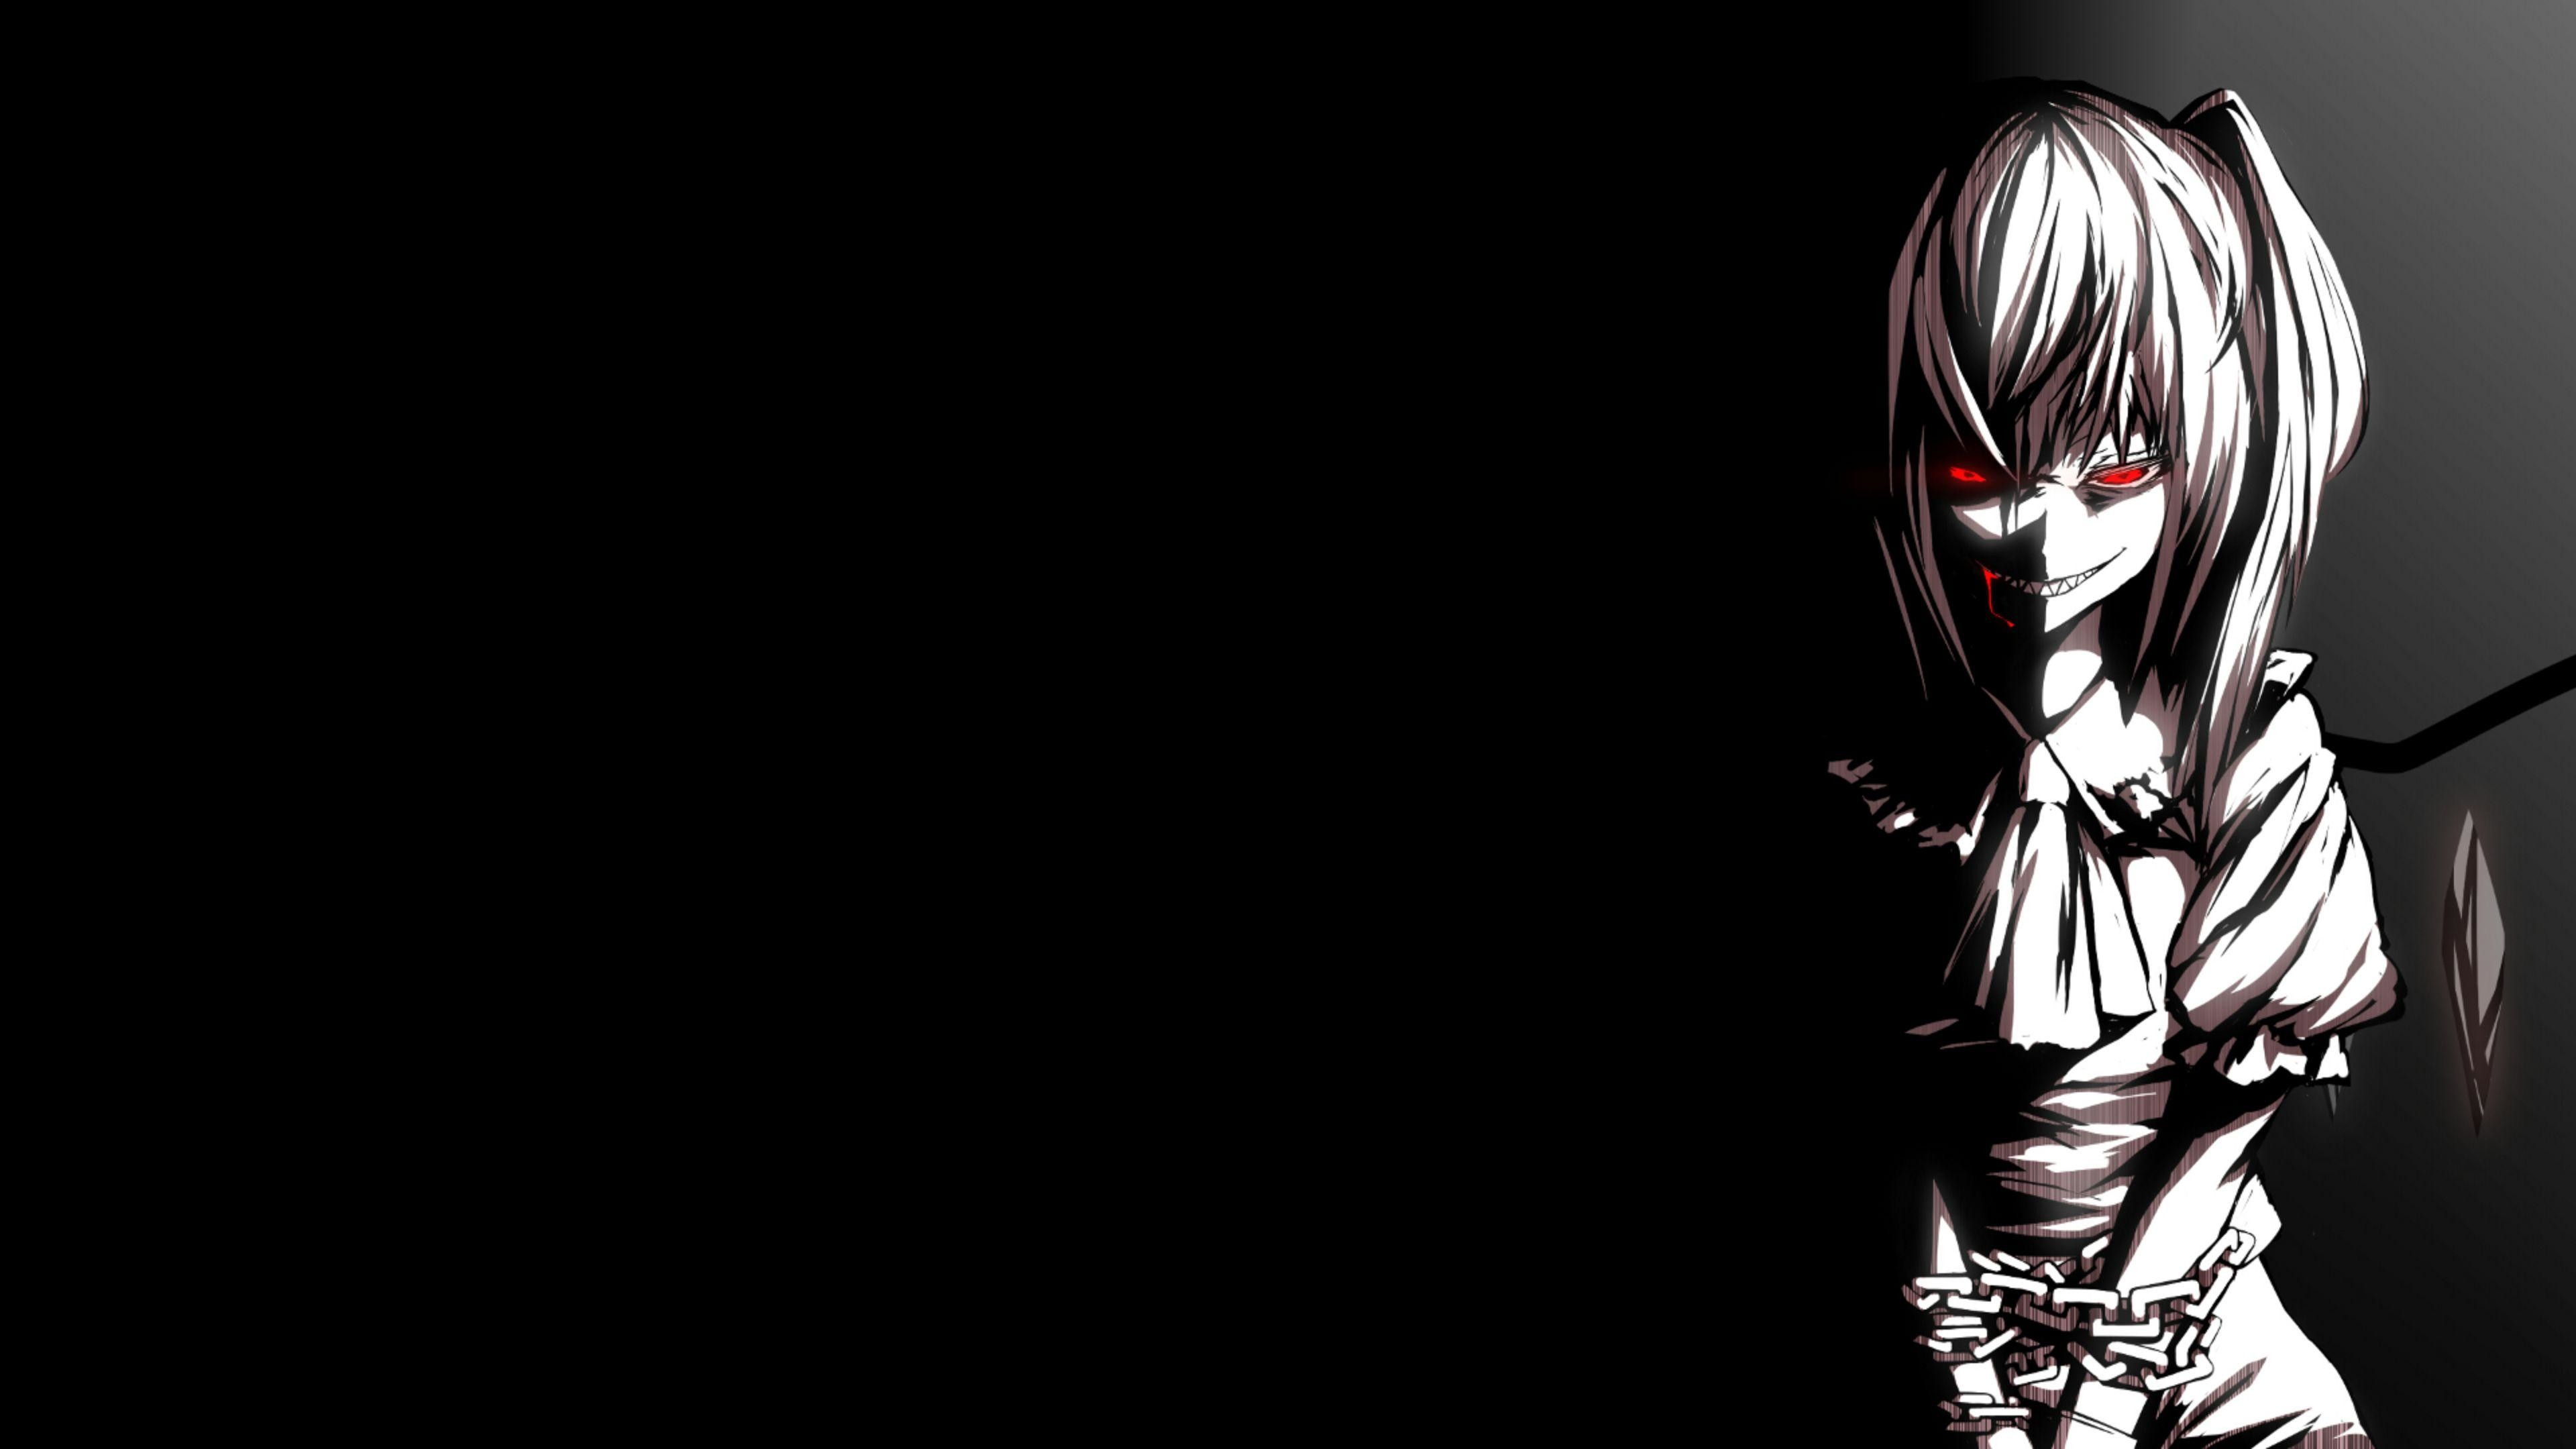 4k anime wallpaper 56 images - Dark anime background ...